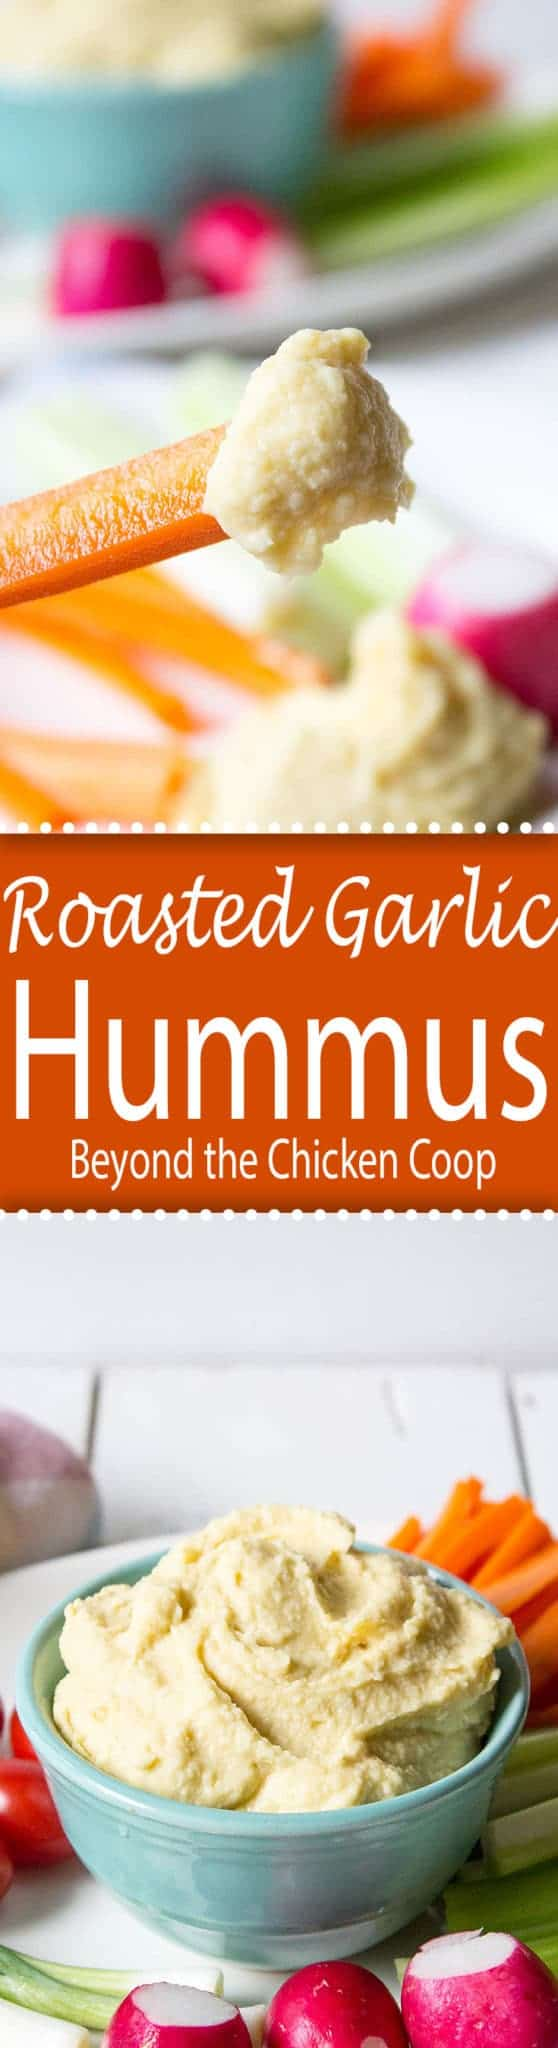 Roasted Garlic Hummus beyondthechickencoop.com